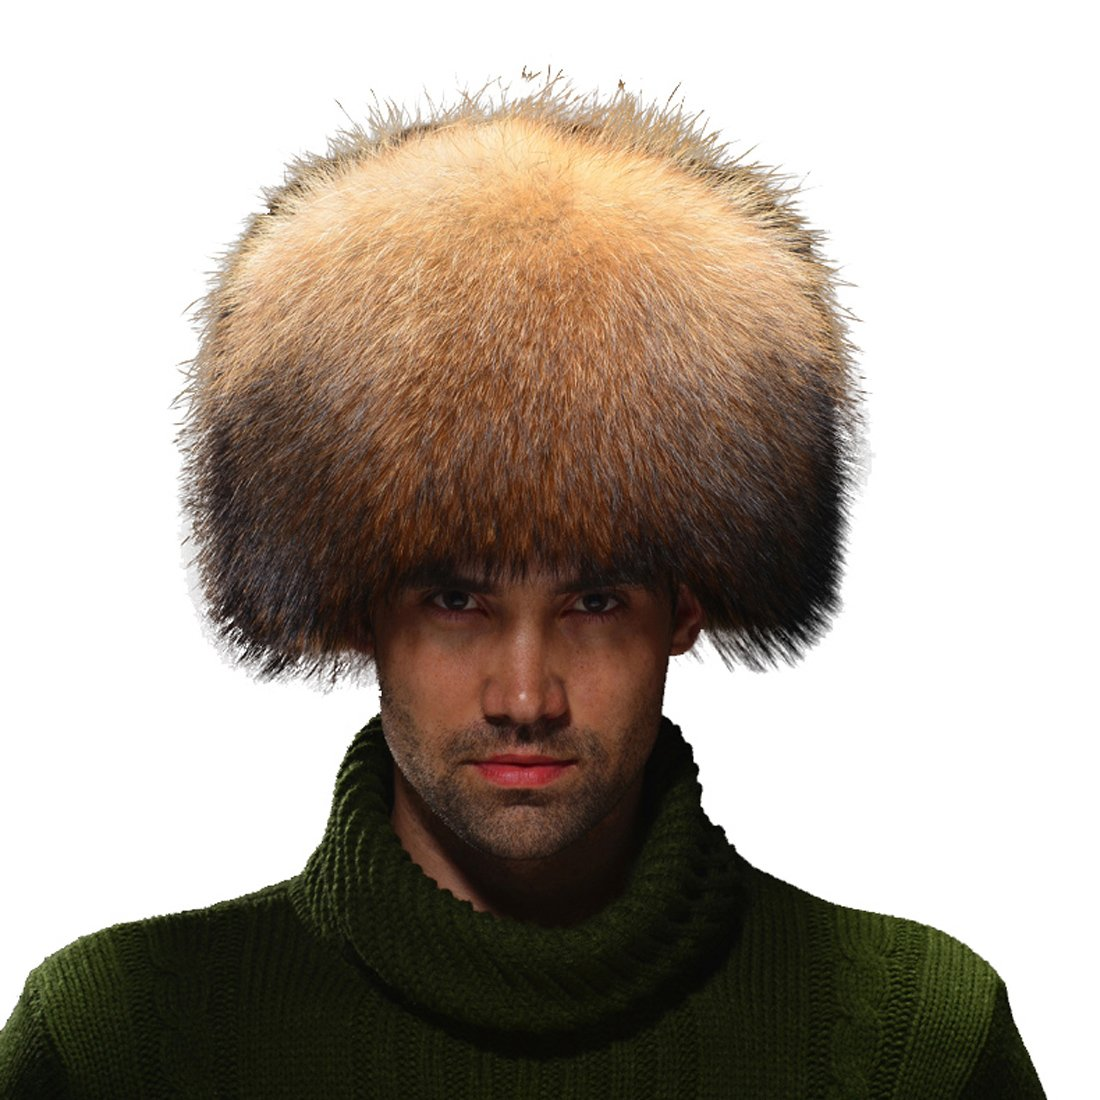 URSFUR Coonskin Cap Raccoon Fur Trapper Hat (One Size Fits All, Natural Color) by URSFUR